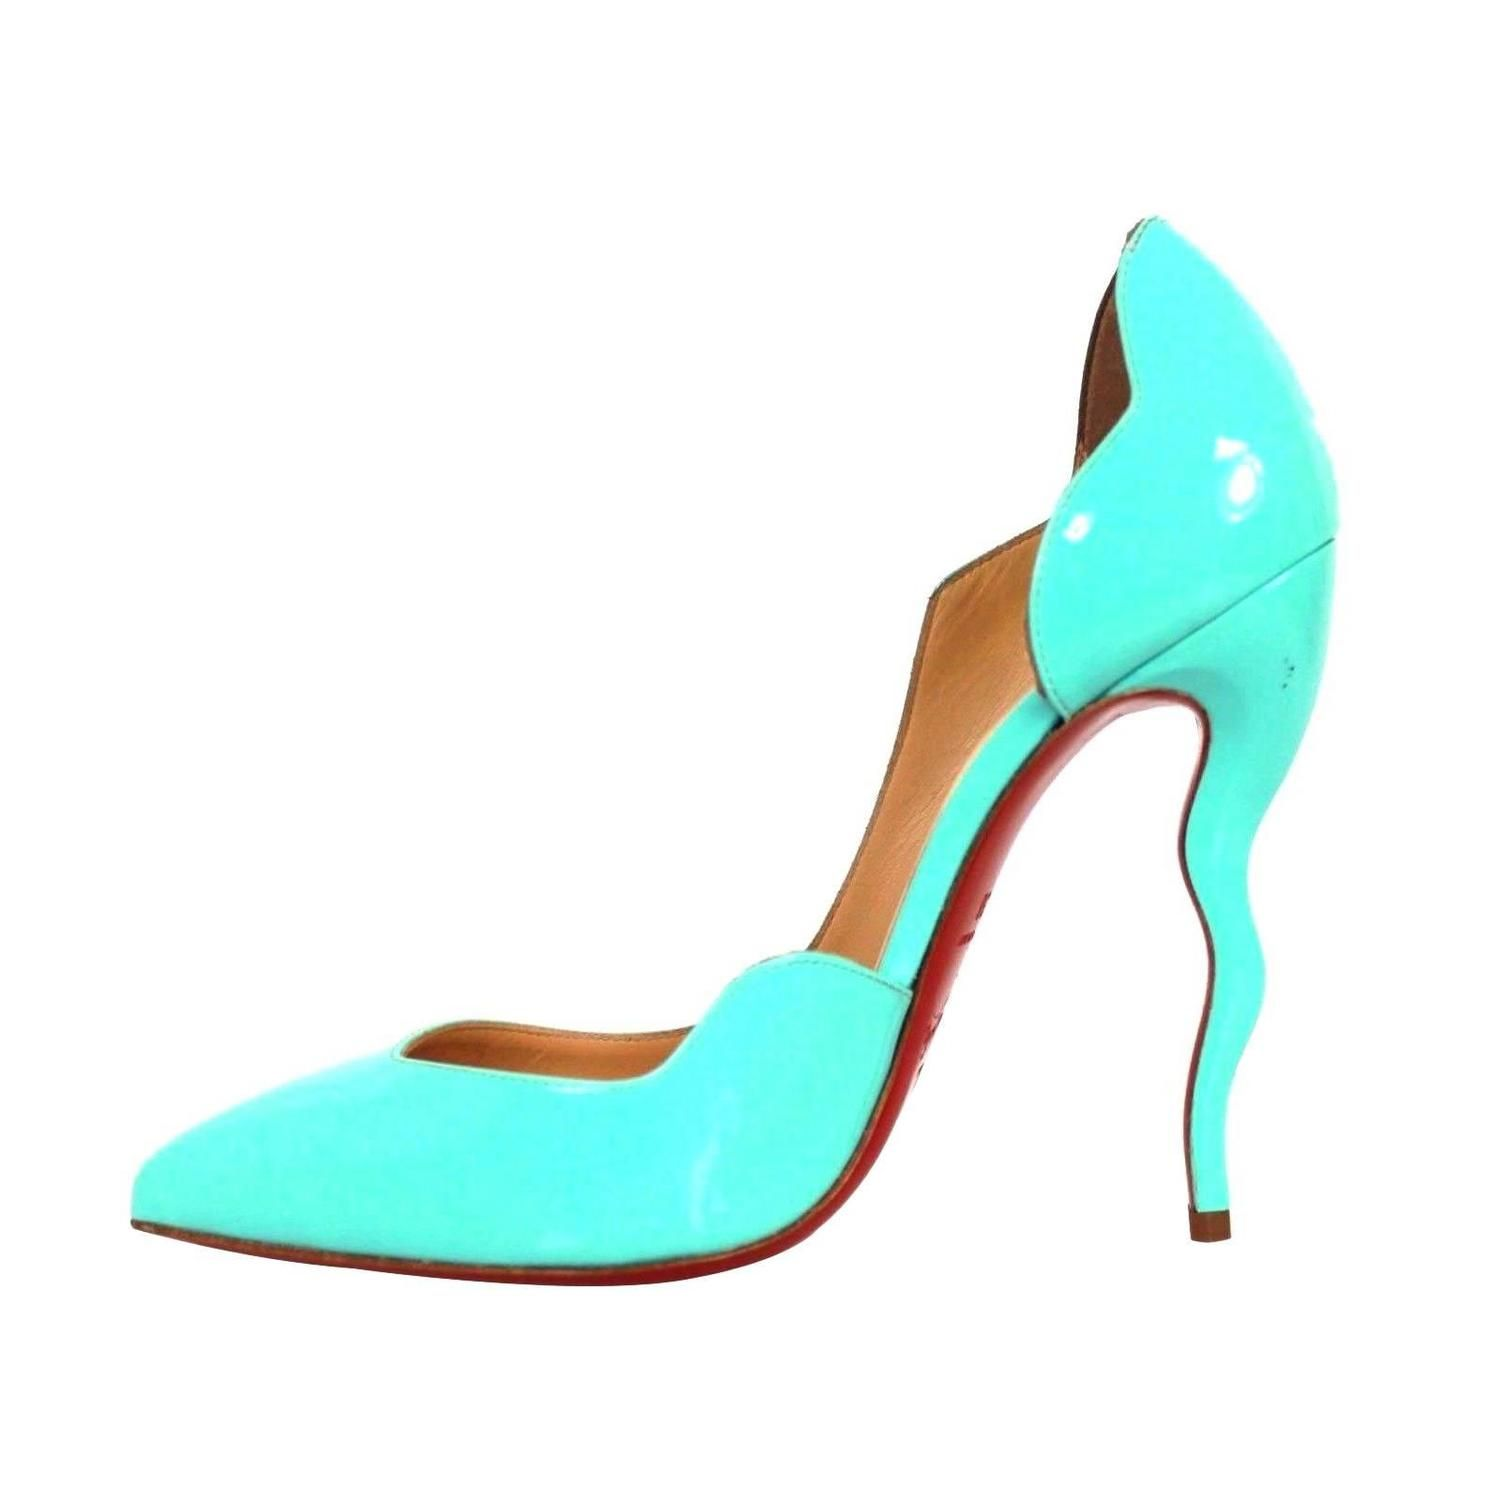 0e3ffe6ceb1 ... low cost christian louboutin blue patent leather scalloped asymmetrical  dalida pumps from a collection of rare